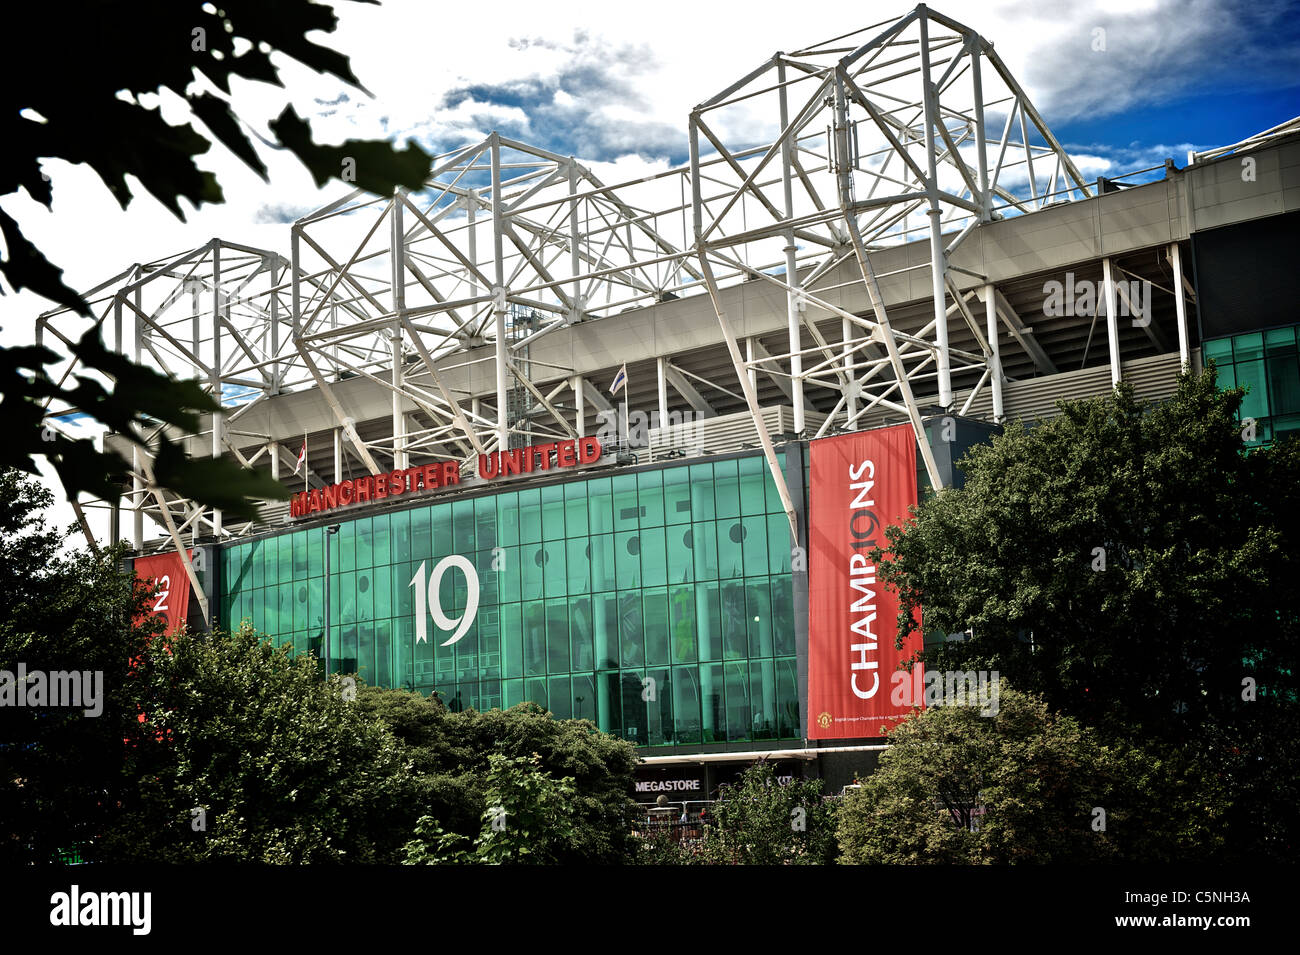 CHAMPIONS 19 TIMES, OLD TRAFFORD, HOME OF MANCHESTER UNITED - Stock Image